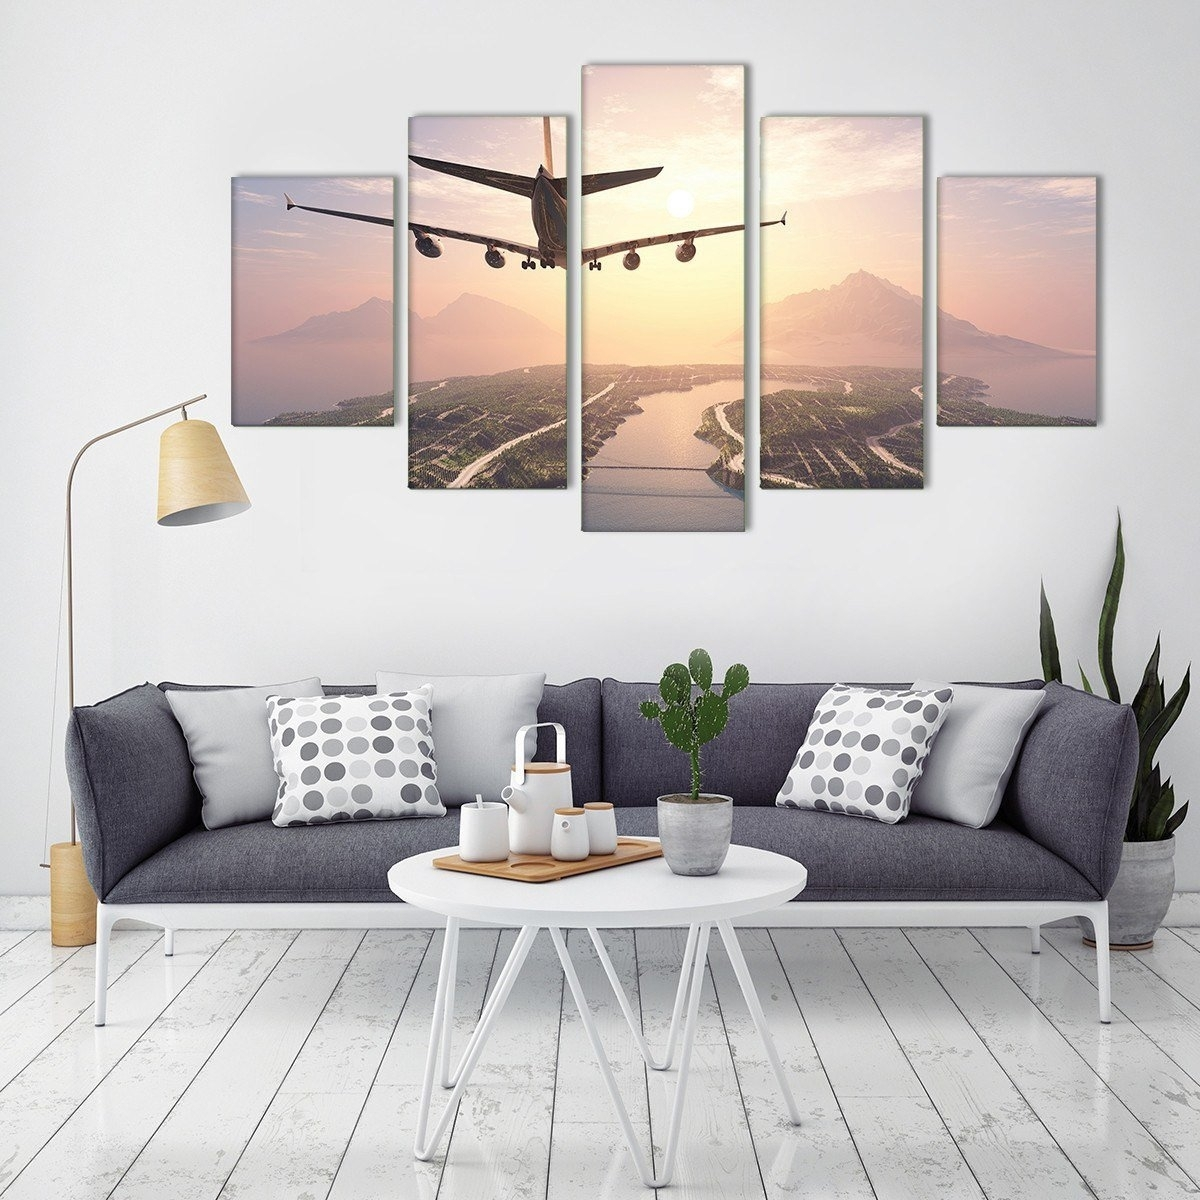 Splendid Design Aviation Wall Art Army Aircraft Canvas Vintage throughout Aviation Wall Art (Image 16 of 20)